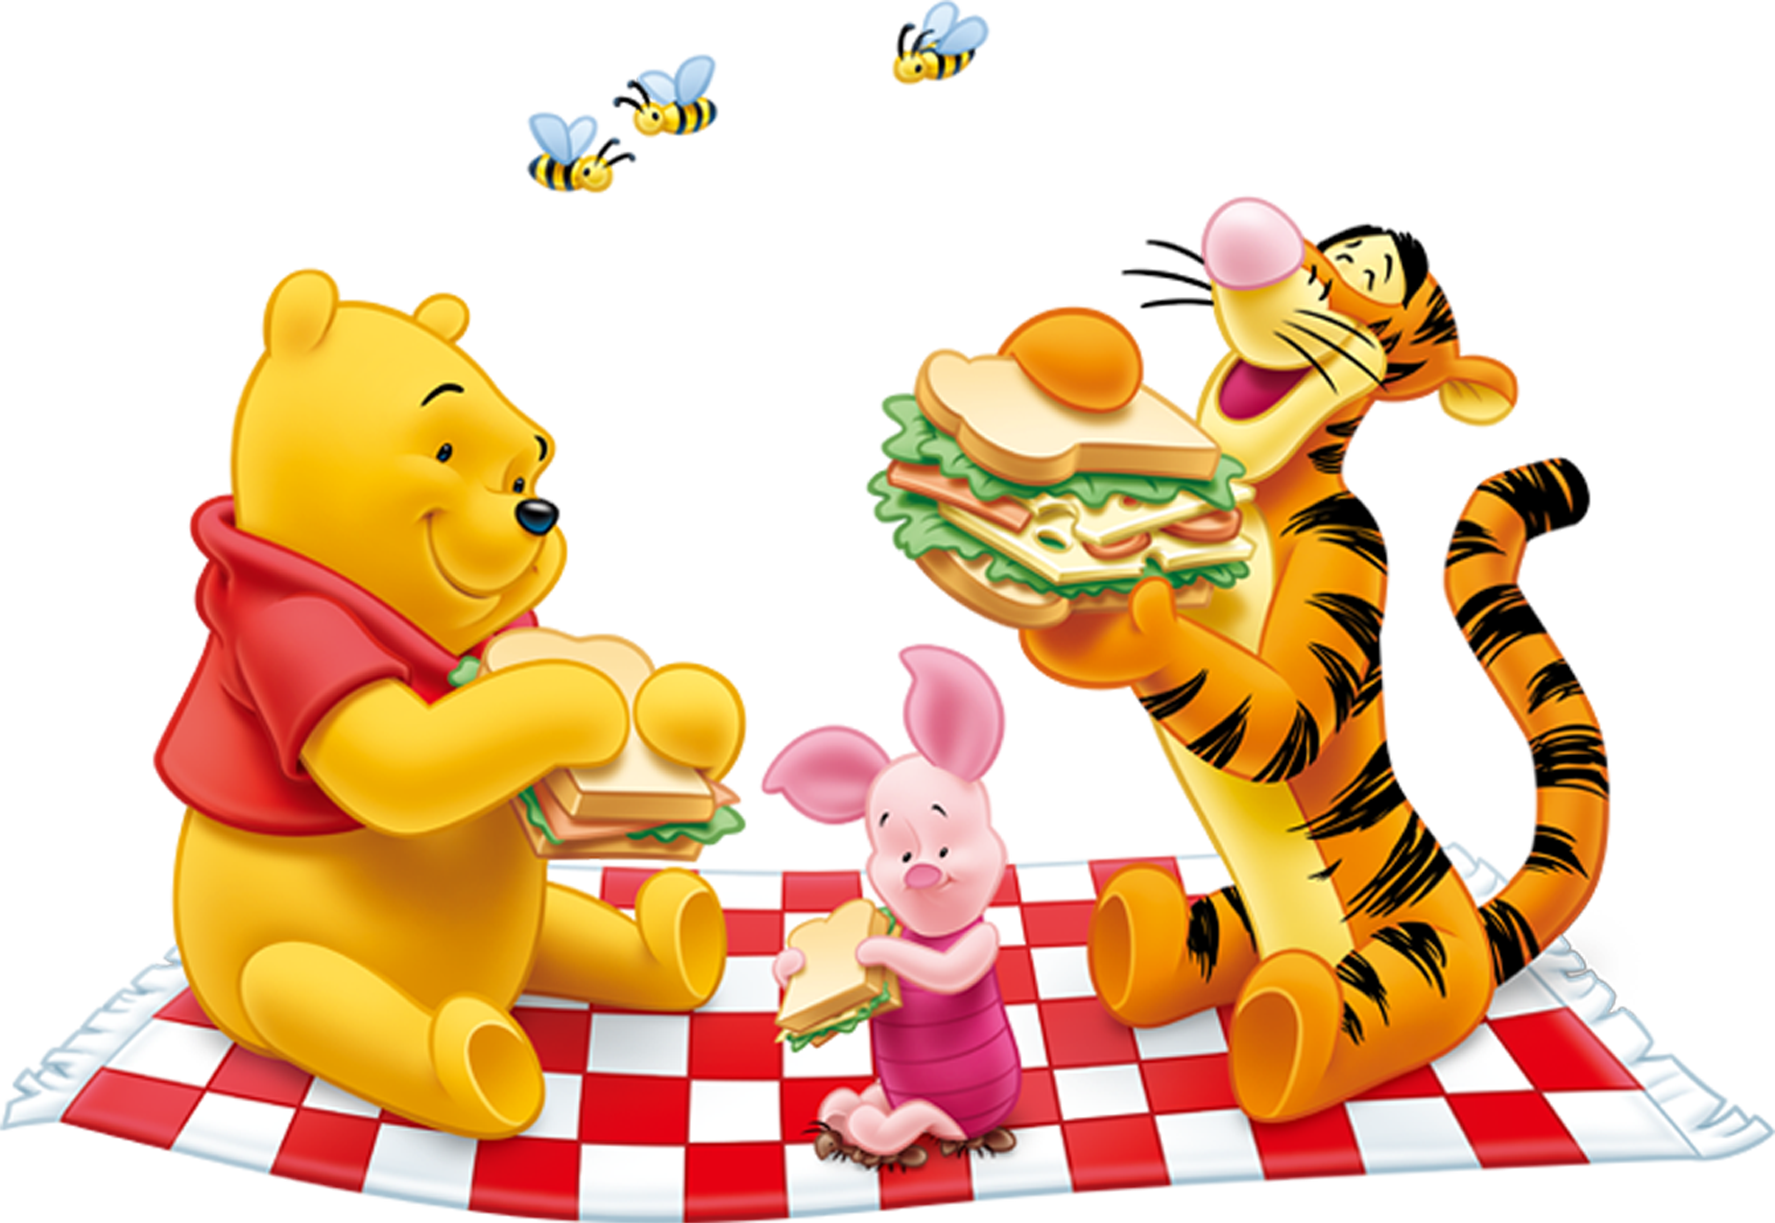 Lunch clipart transparent background. Winnie the pooh png